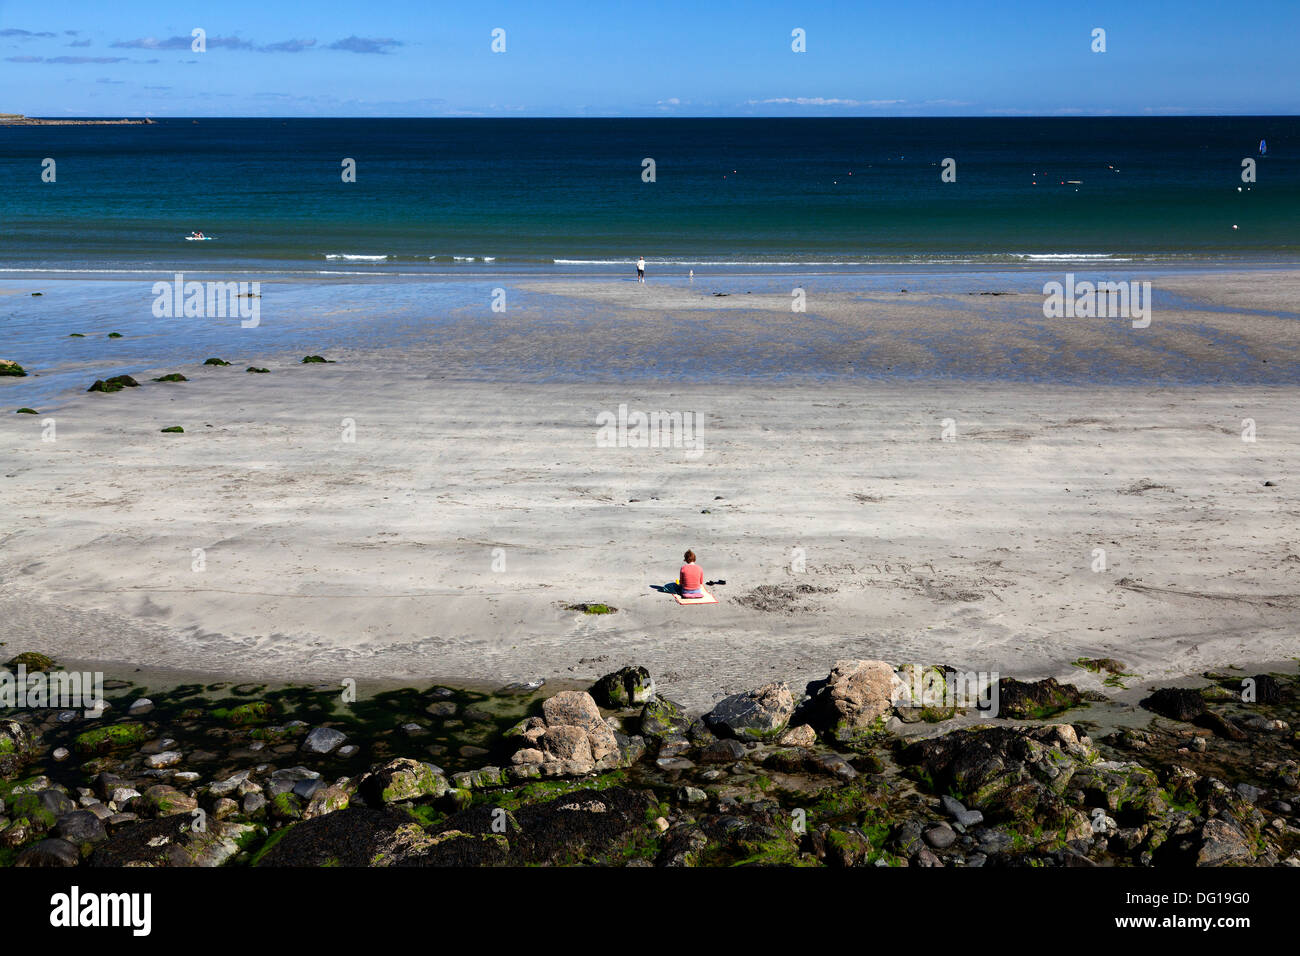 solitary-woman-sitting-on-the-beach-cove